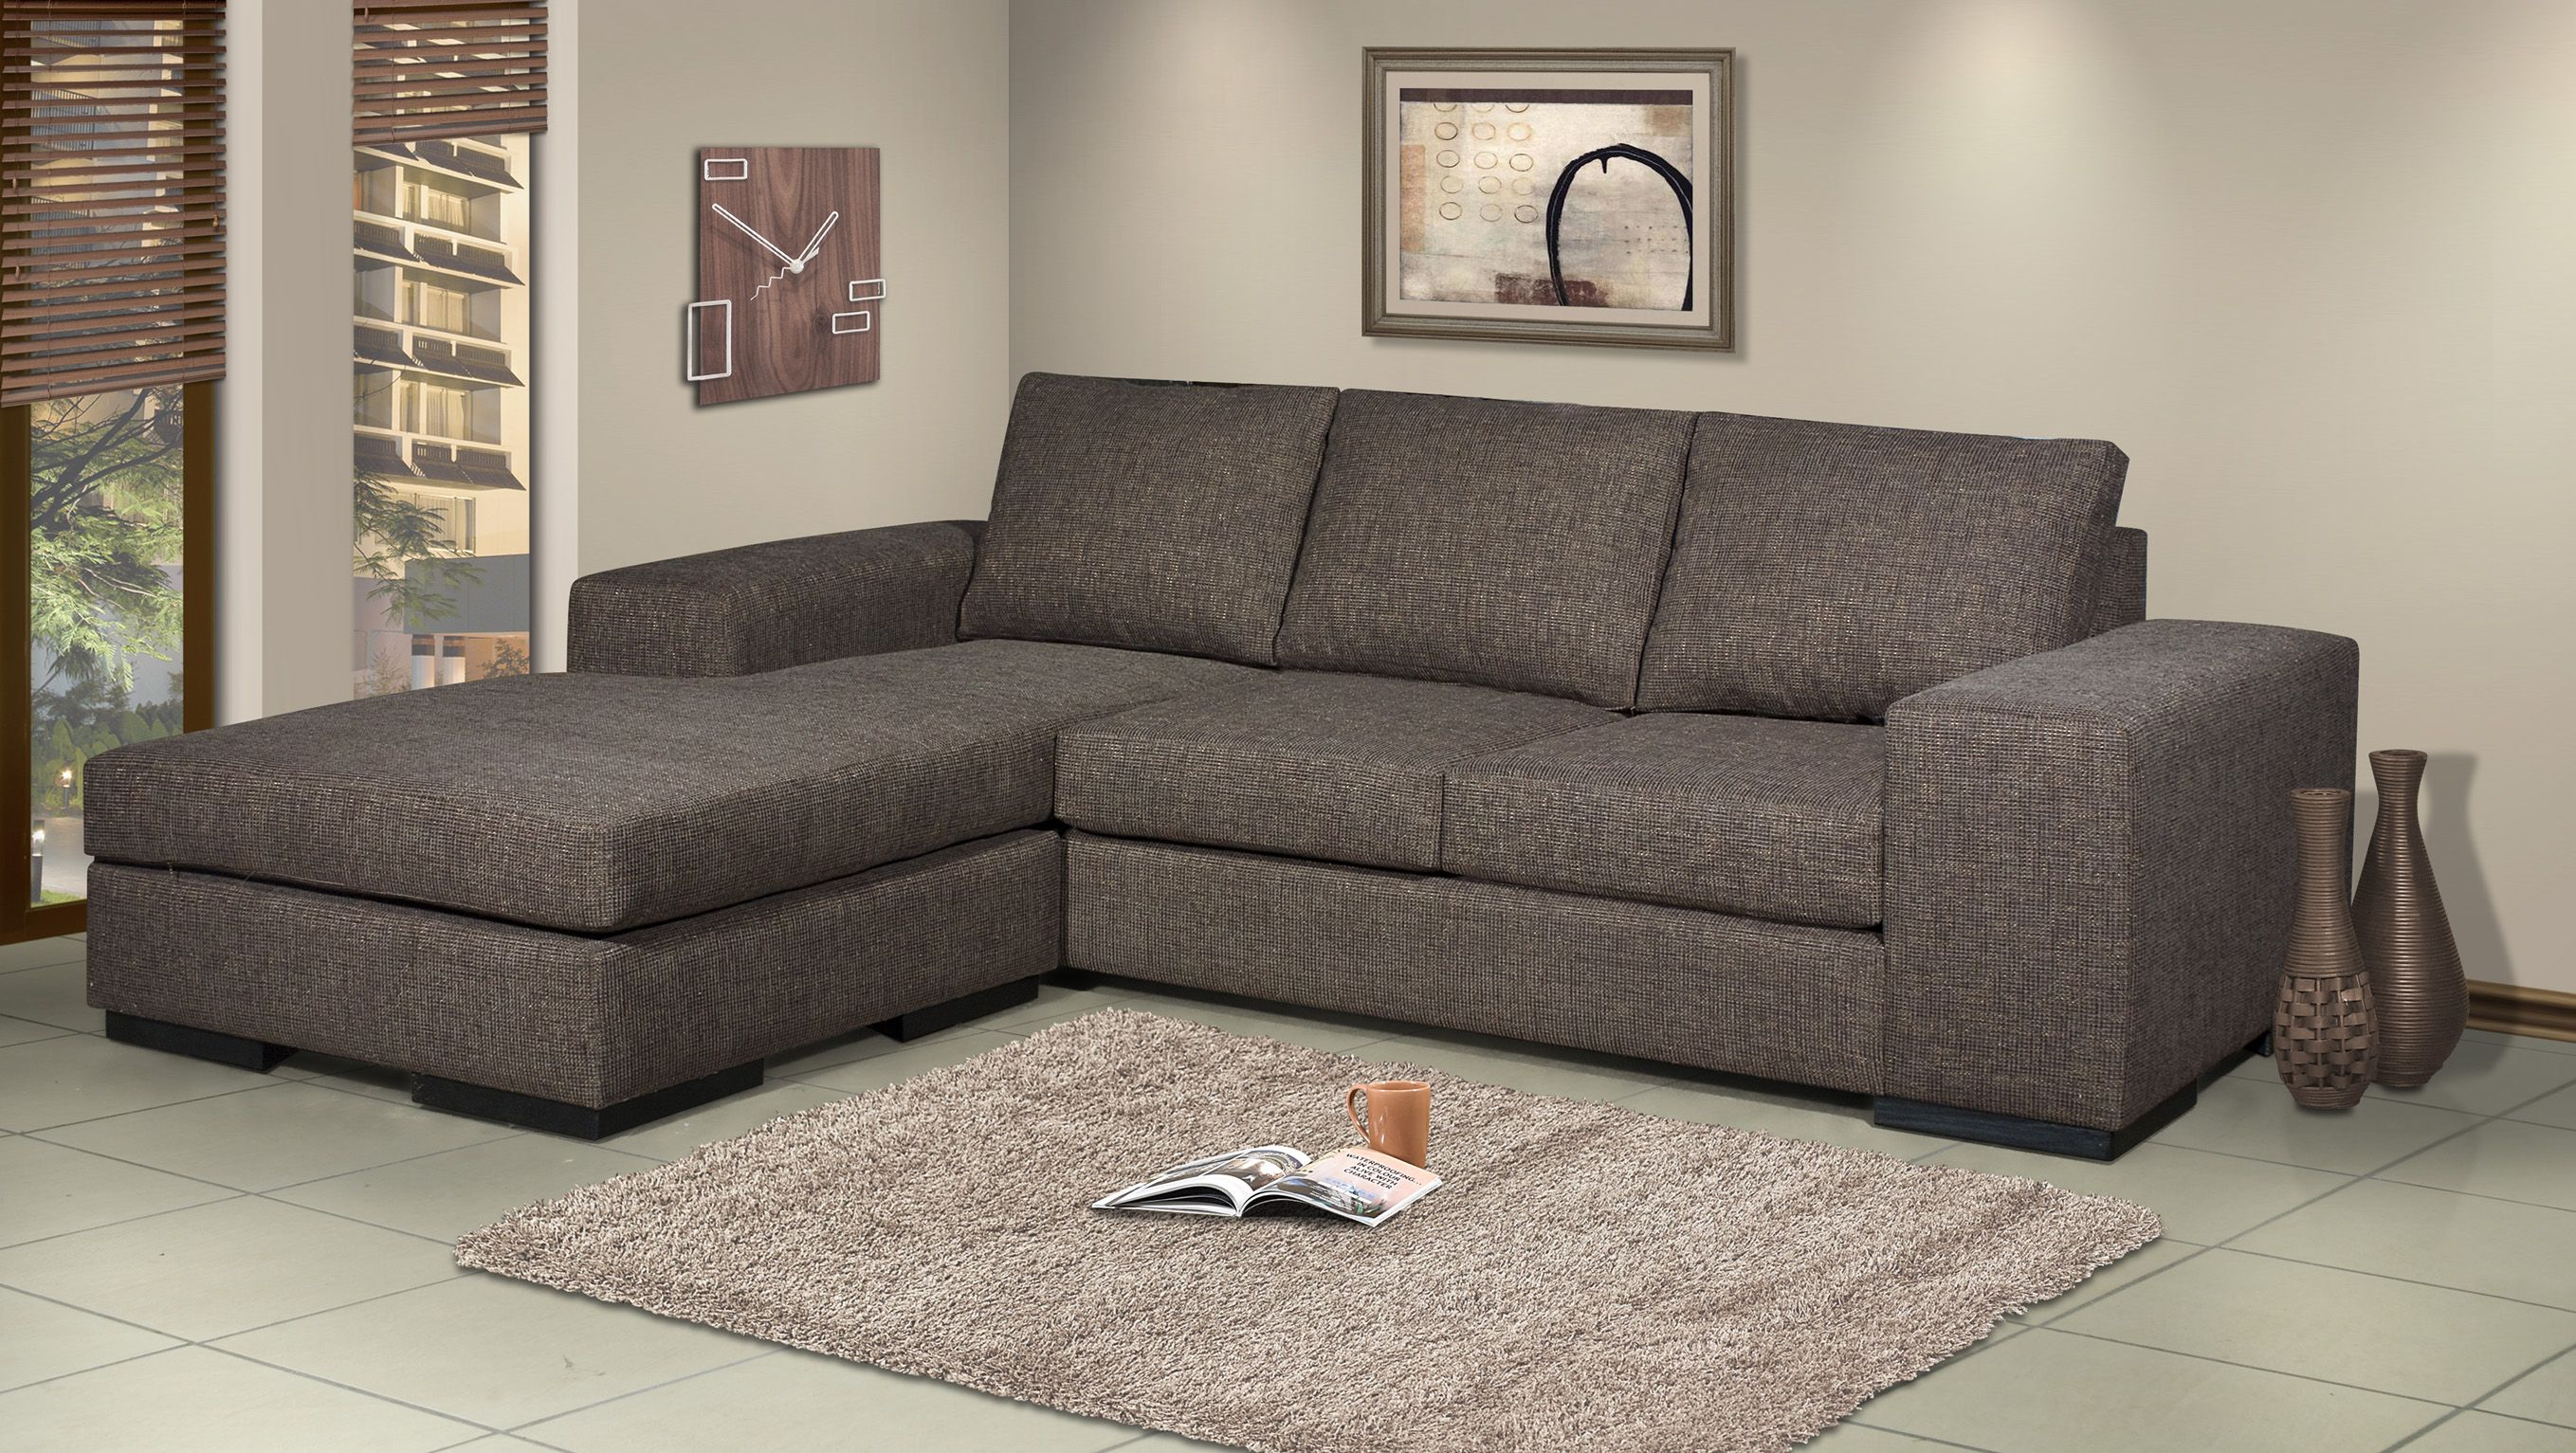 2.5 DIV COUCH OPTIONAL EXTRA R7,999.00 | HOUSE AND HOME